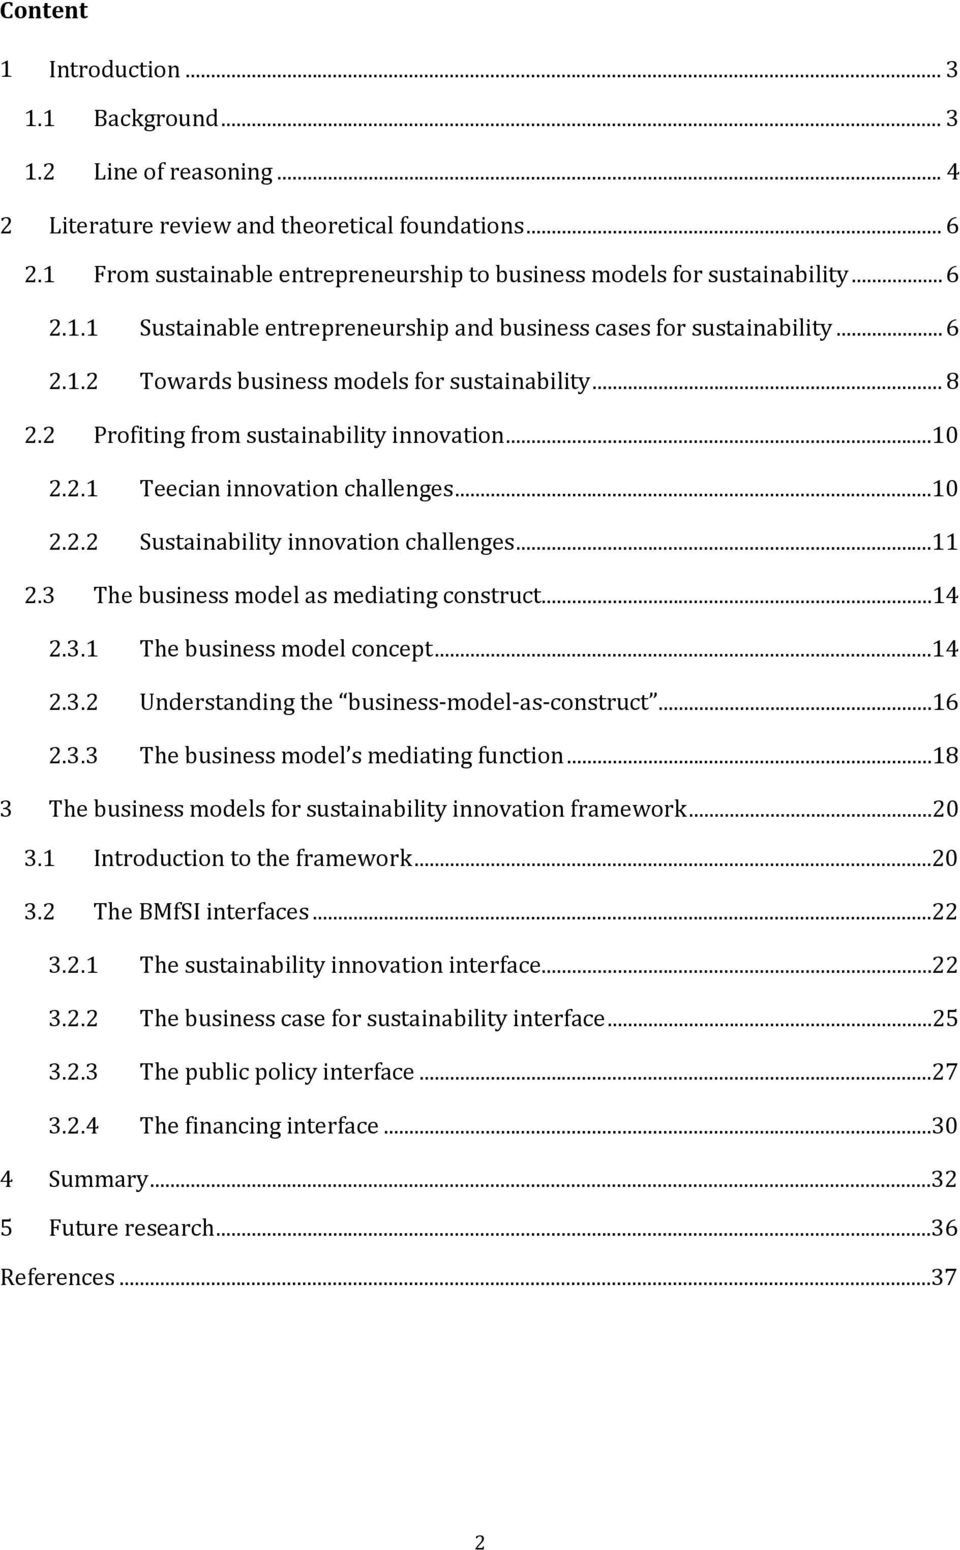 .. 8 2.2 Profiting from sustainability innovation...10 2.2.1 Teecian innovation challenges...10 2.2.2 Sustainability innovation challenges...11 2.3 The business model as mediating construct...14 2.3.1 The business model concept.